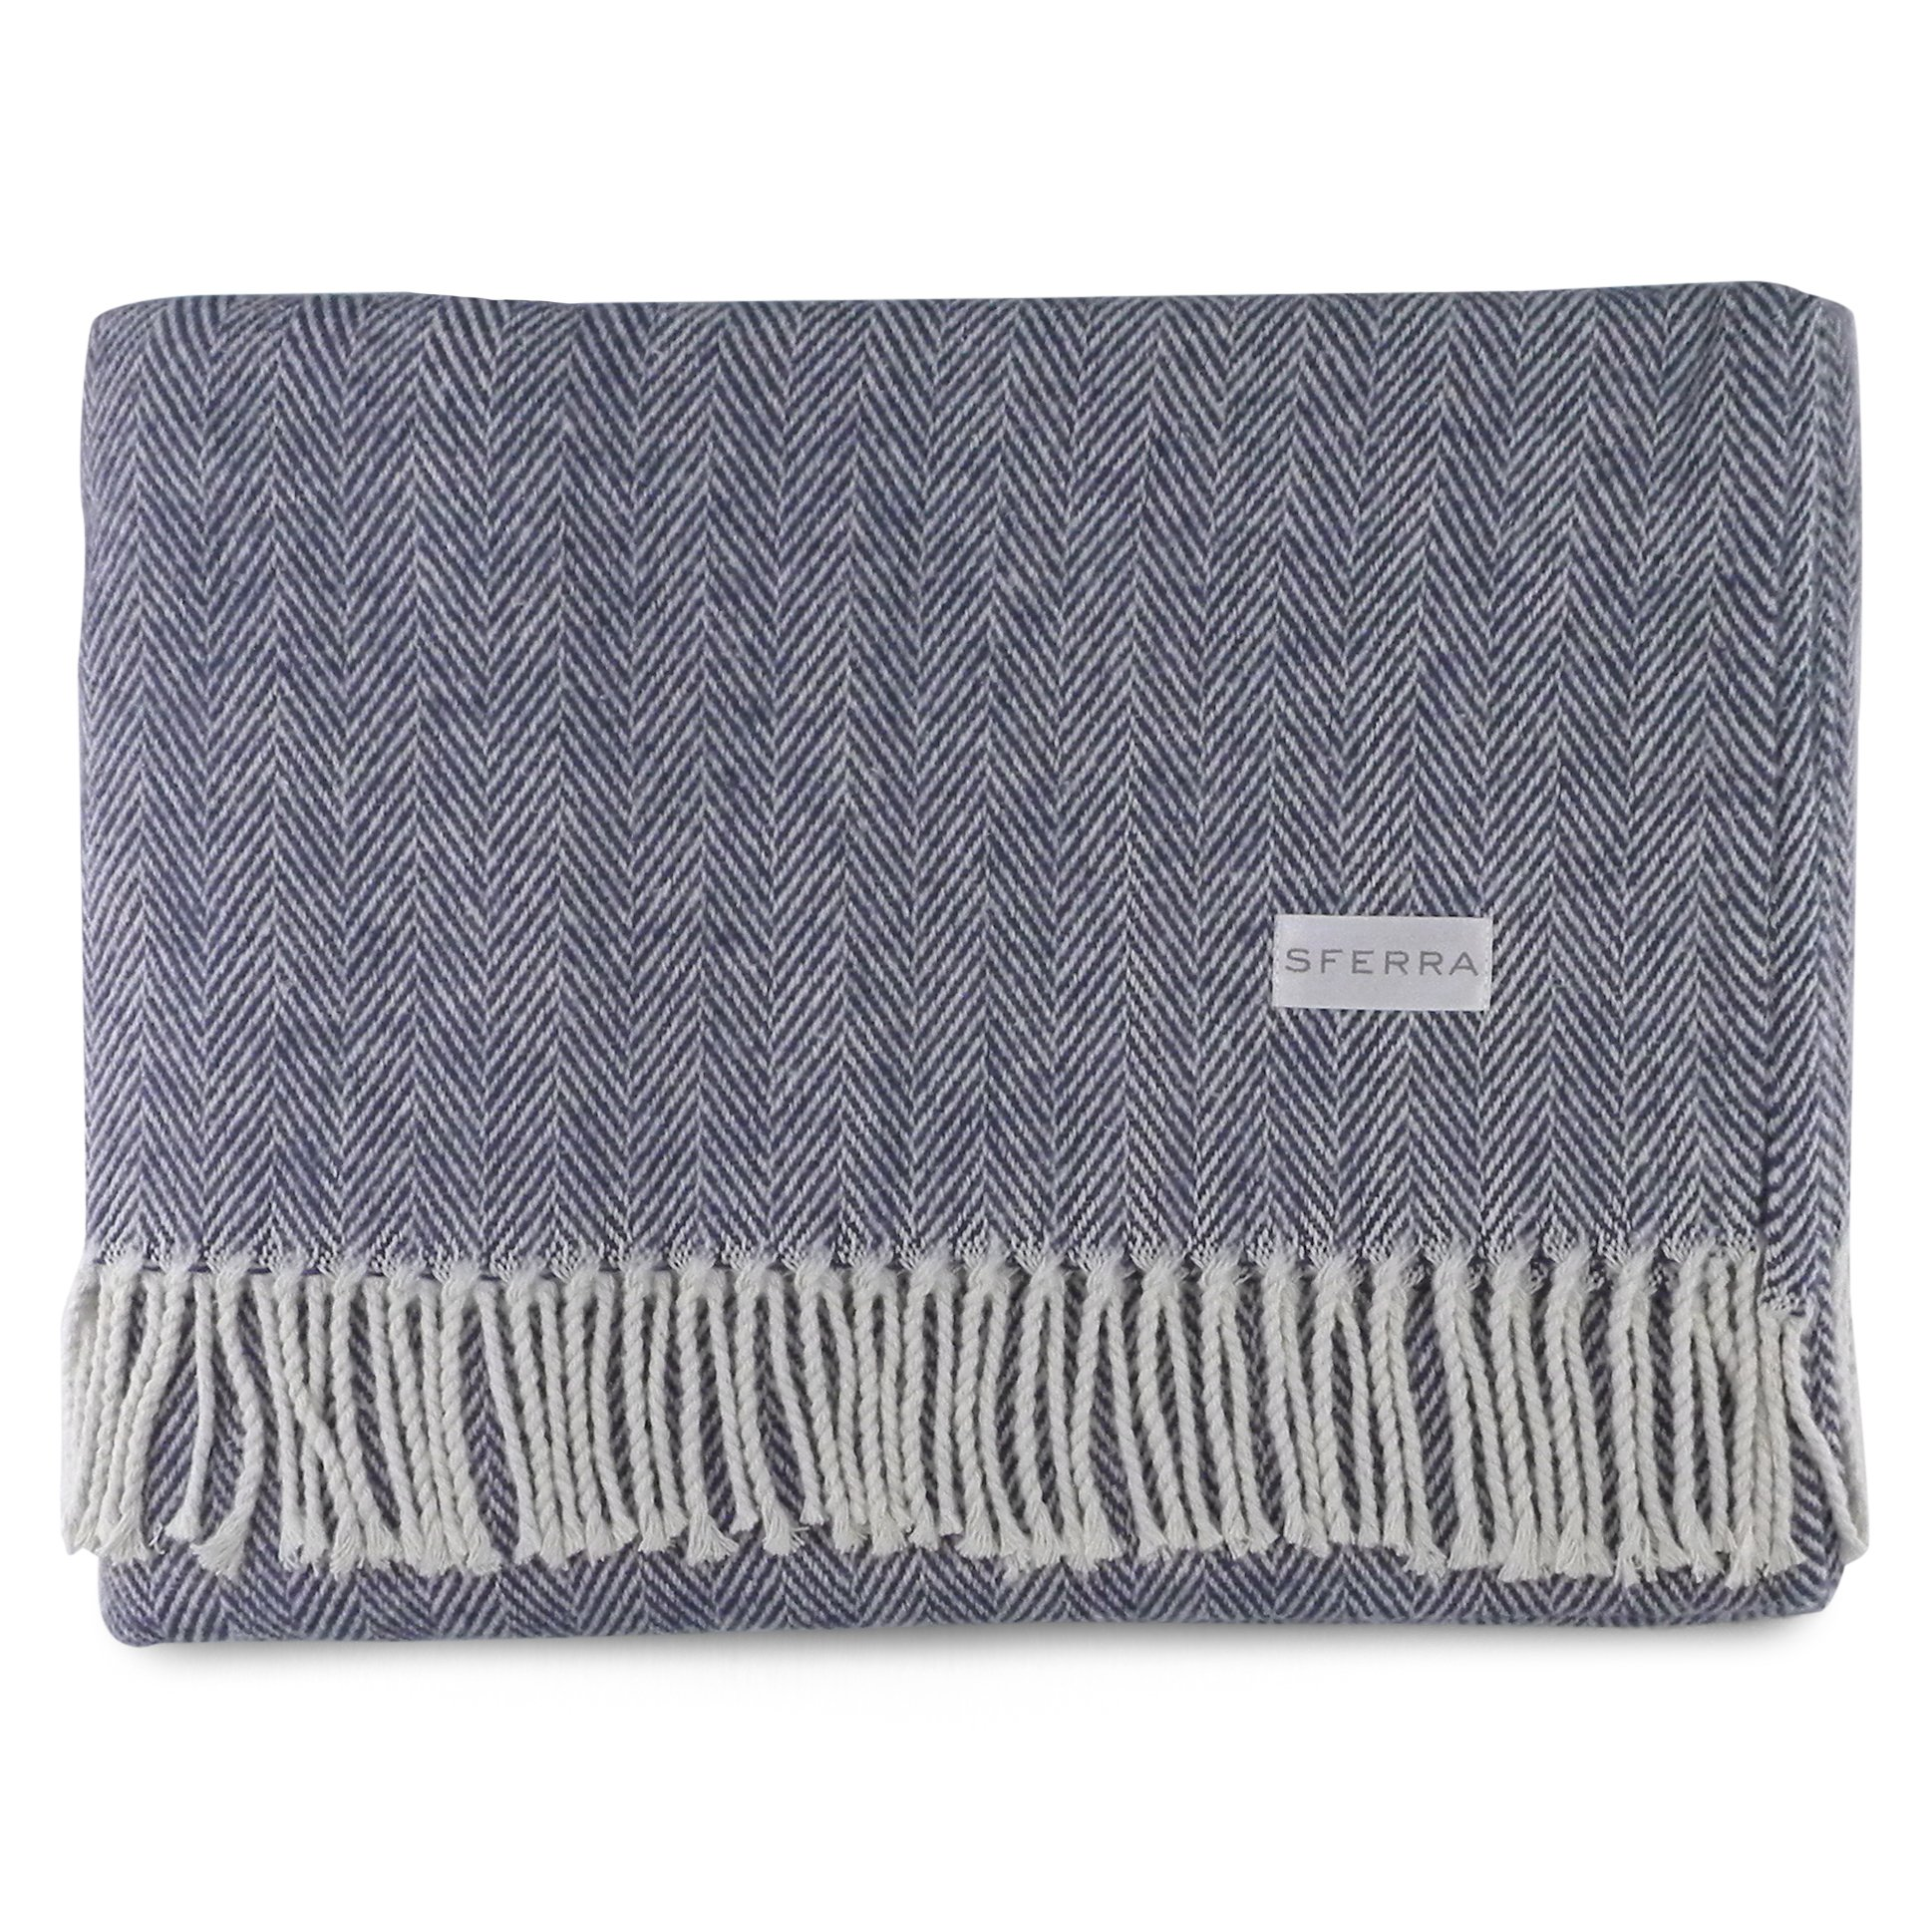 Sferra Celine Herringbone, 100% Cotton Throw Blanket - Navy